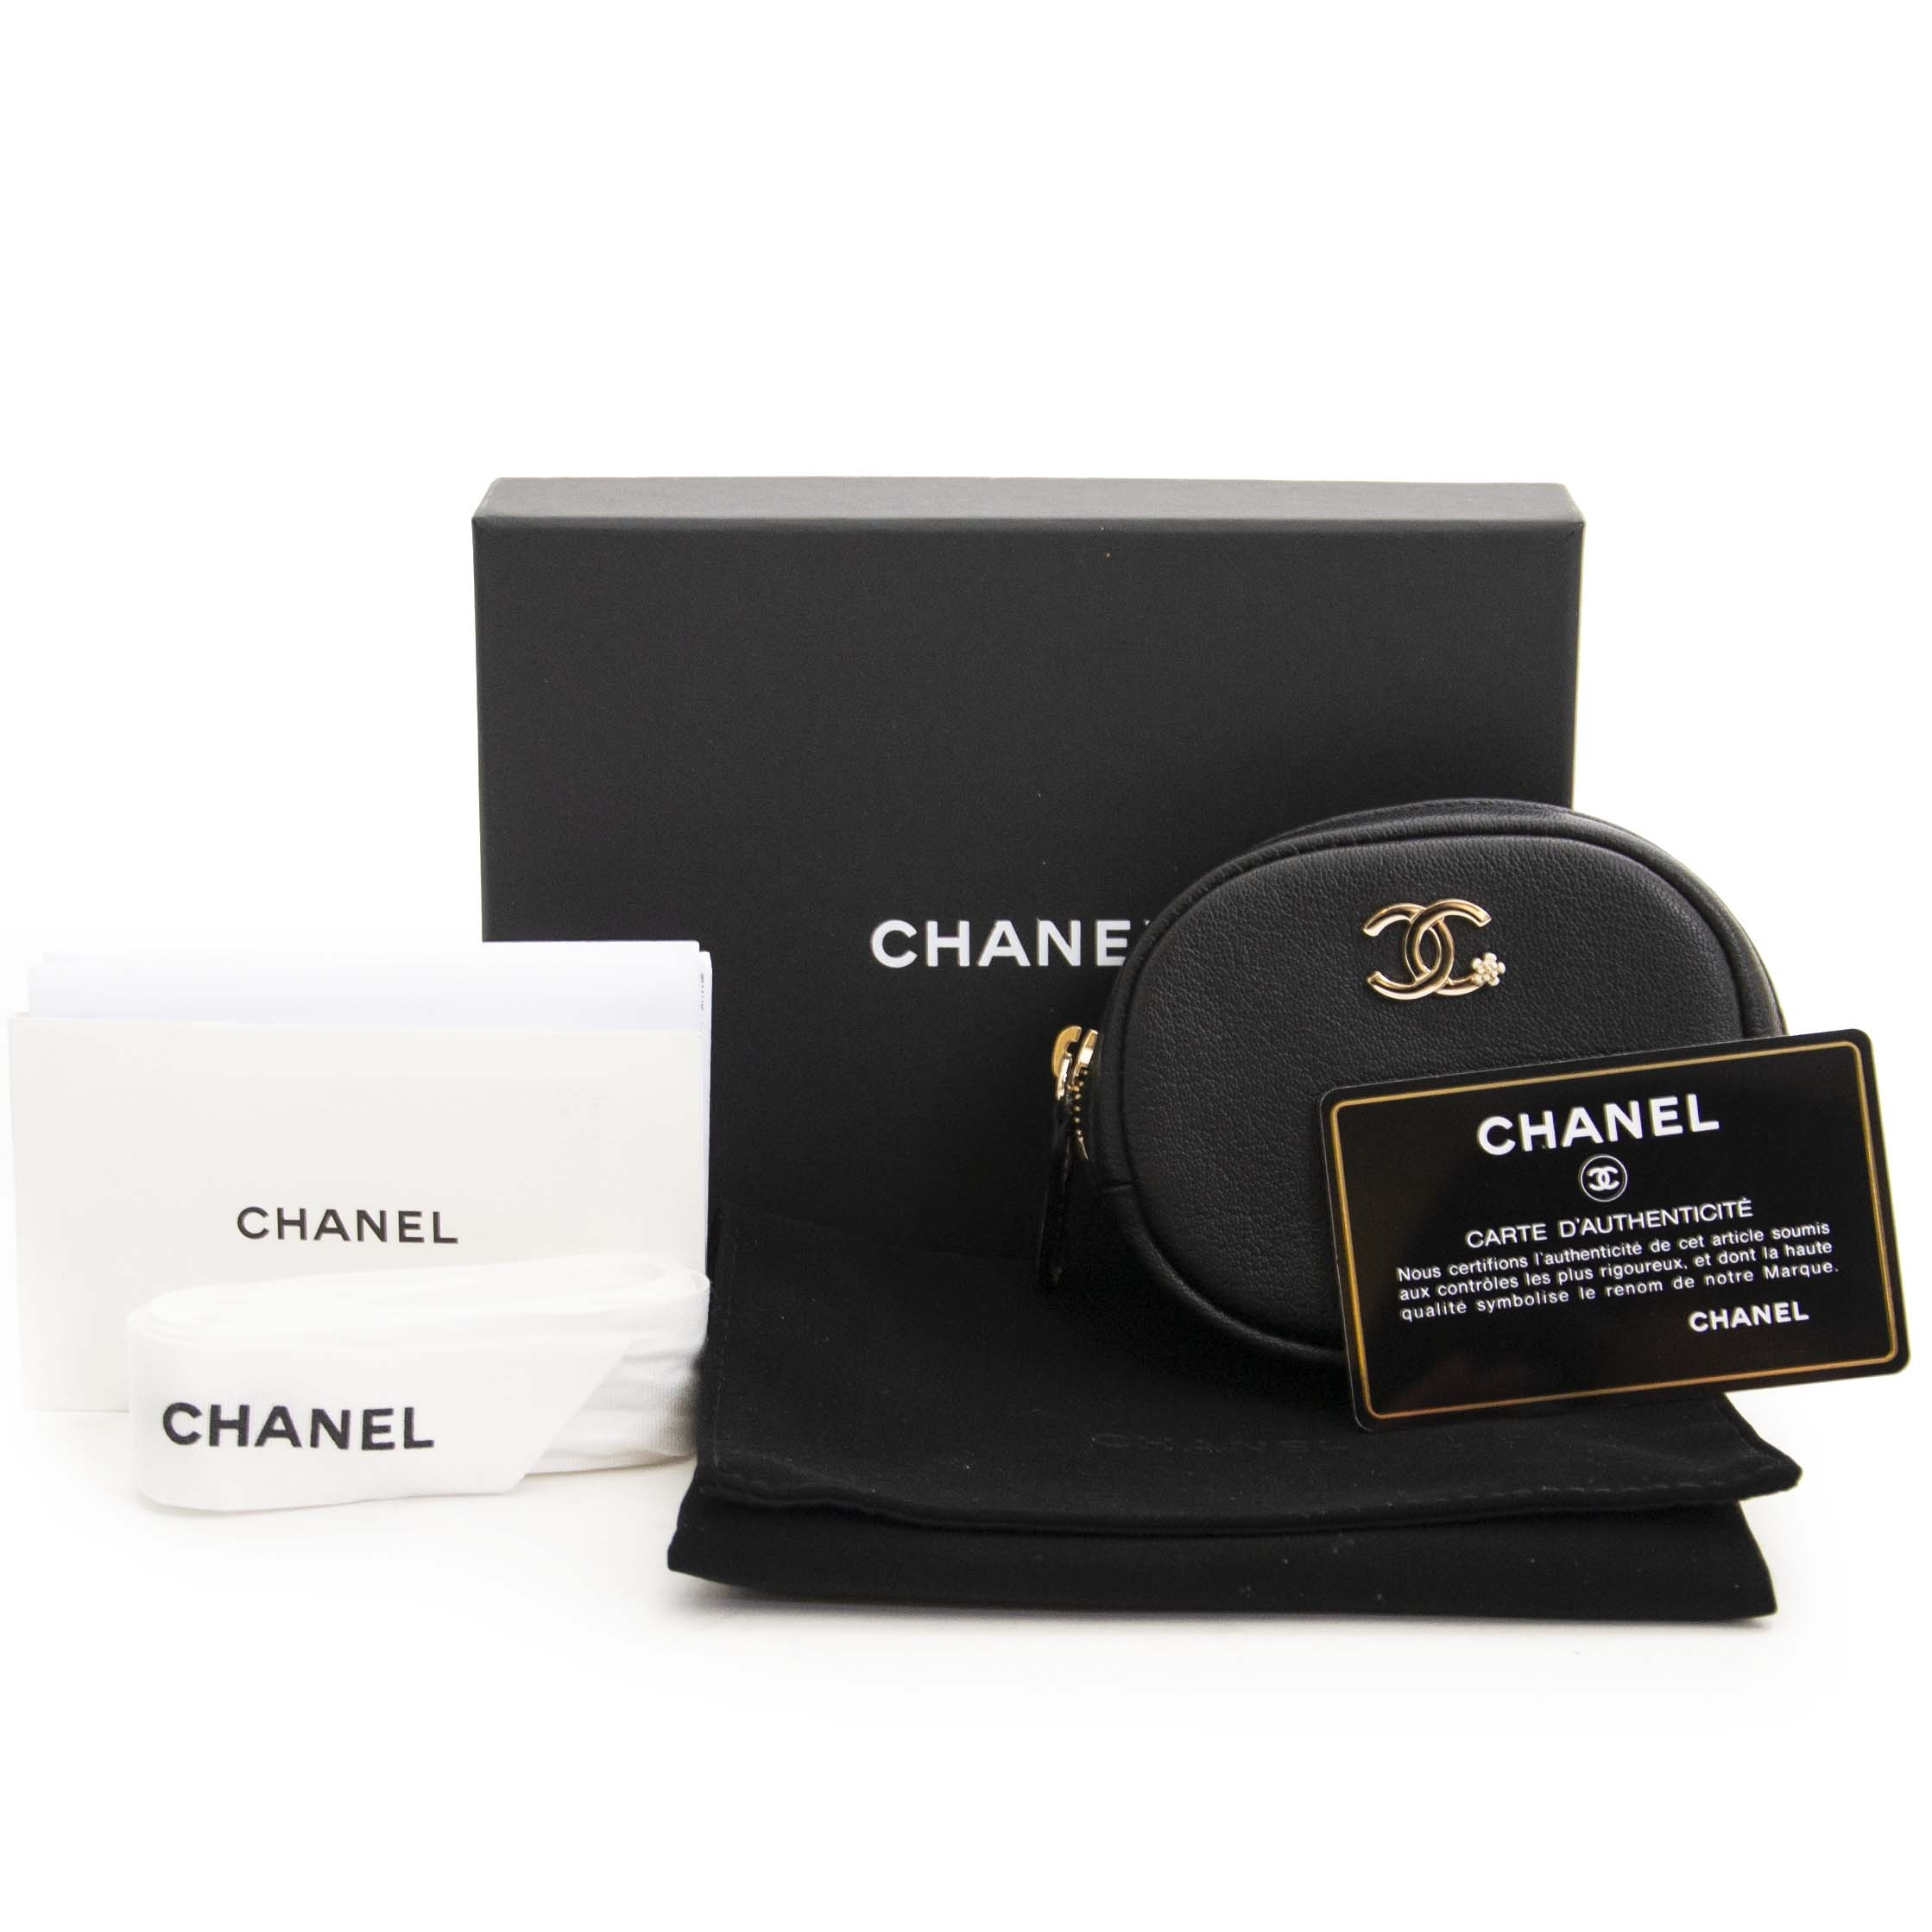 Chanel Zipped Coin Purse on sale with discount only at Labellov in Antwerp Belgium webshop